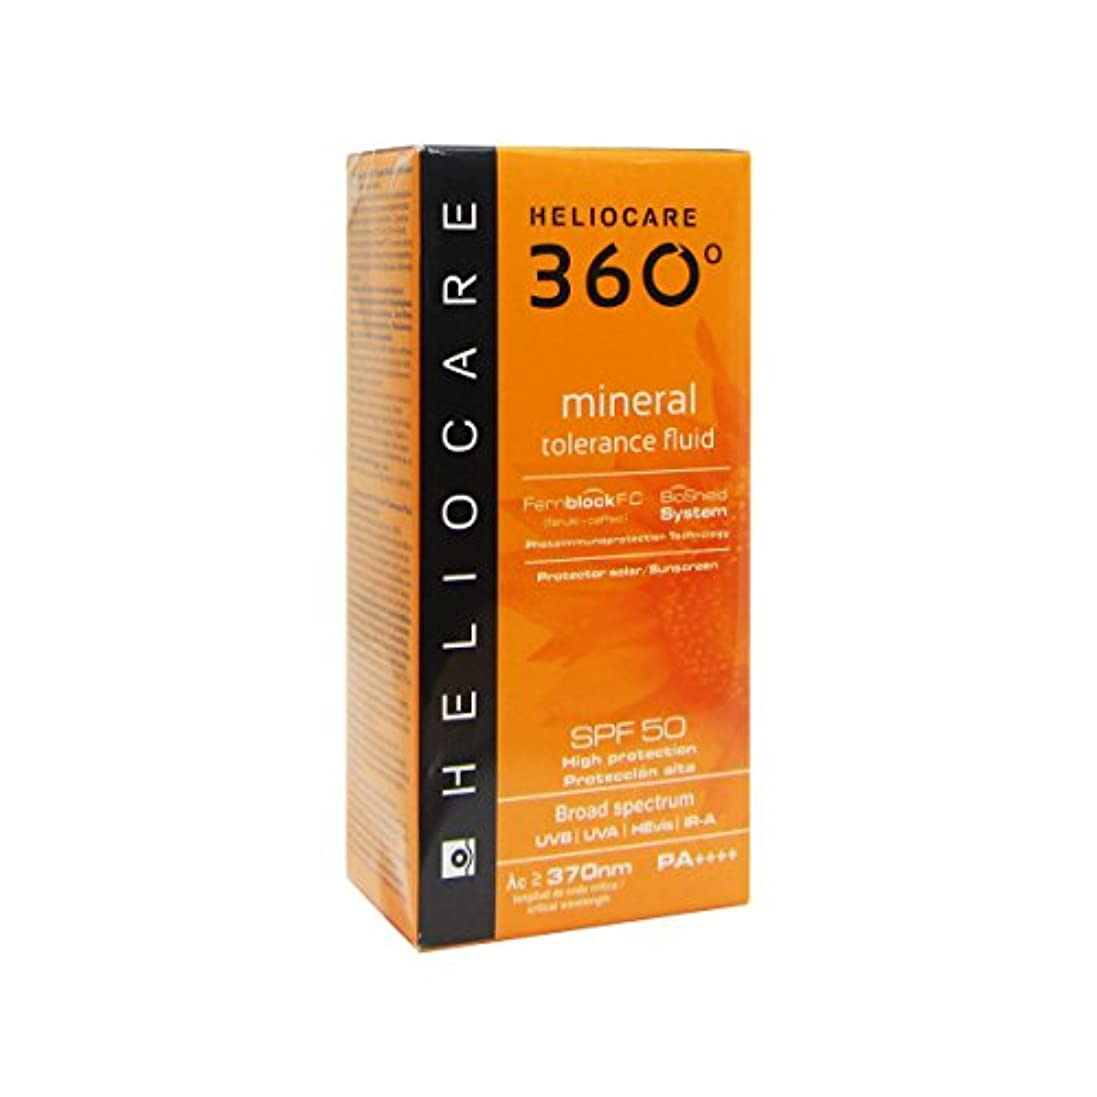 共和党魔術芸術Heliocare 360 Mineral Tolerance Fluid Spf50 50ml [並行輸入品]